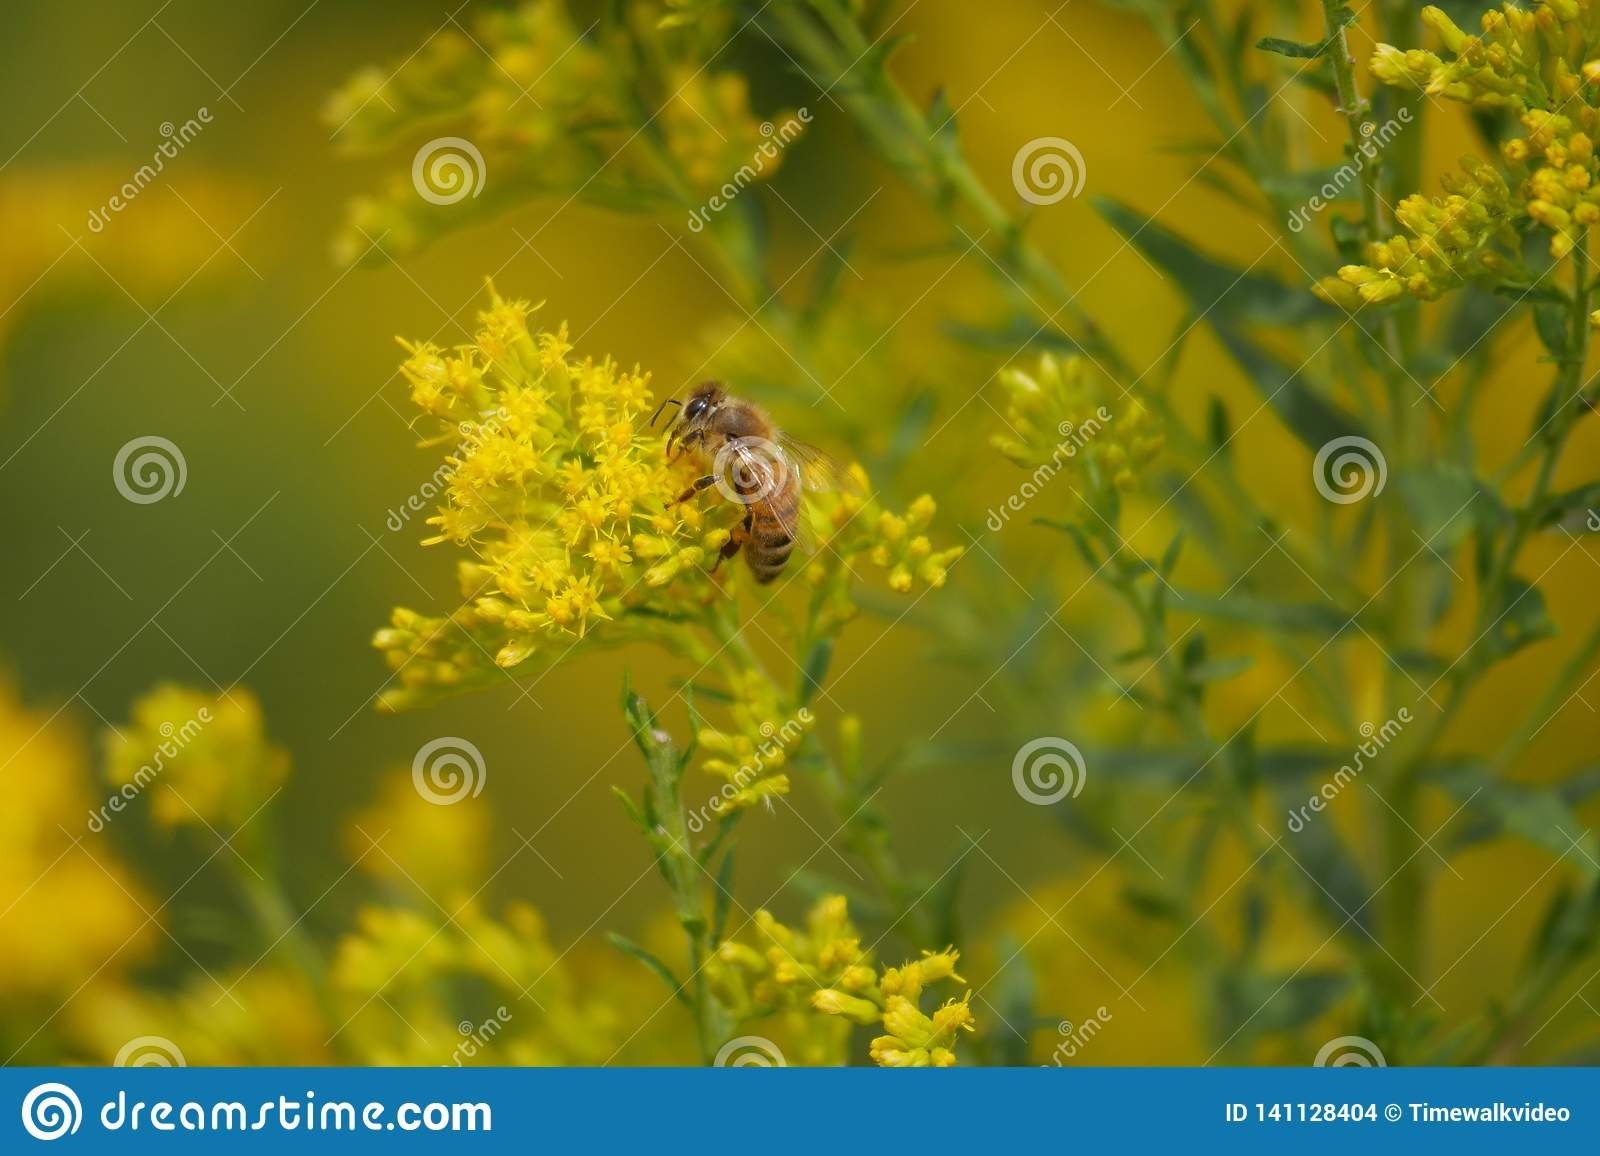 Honey Bee Searches for Pollen on Yellow Flowers